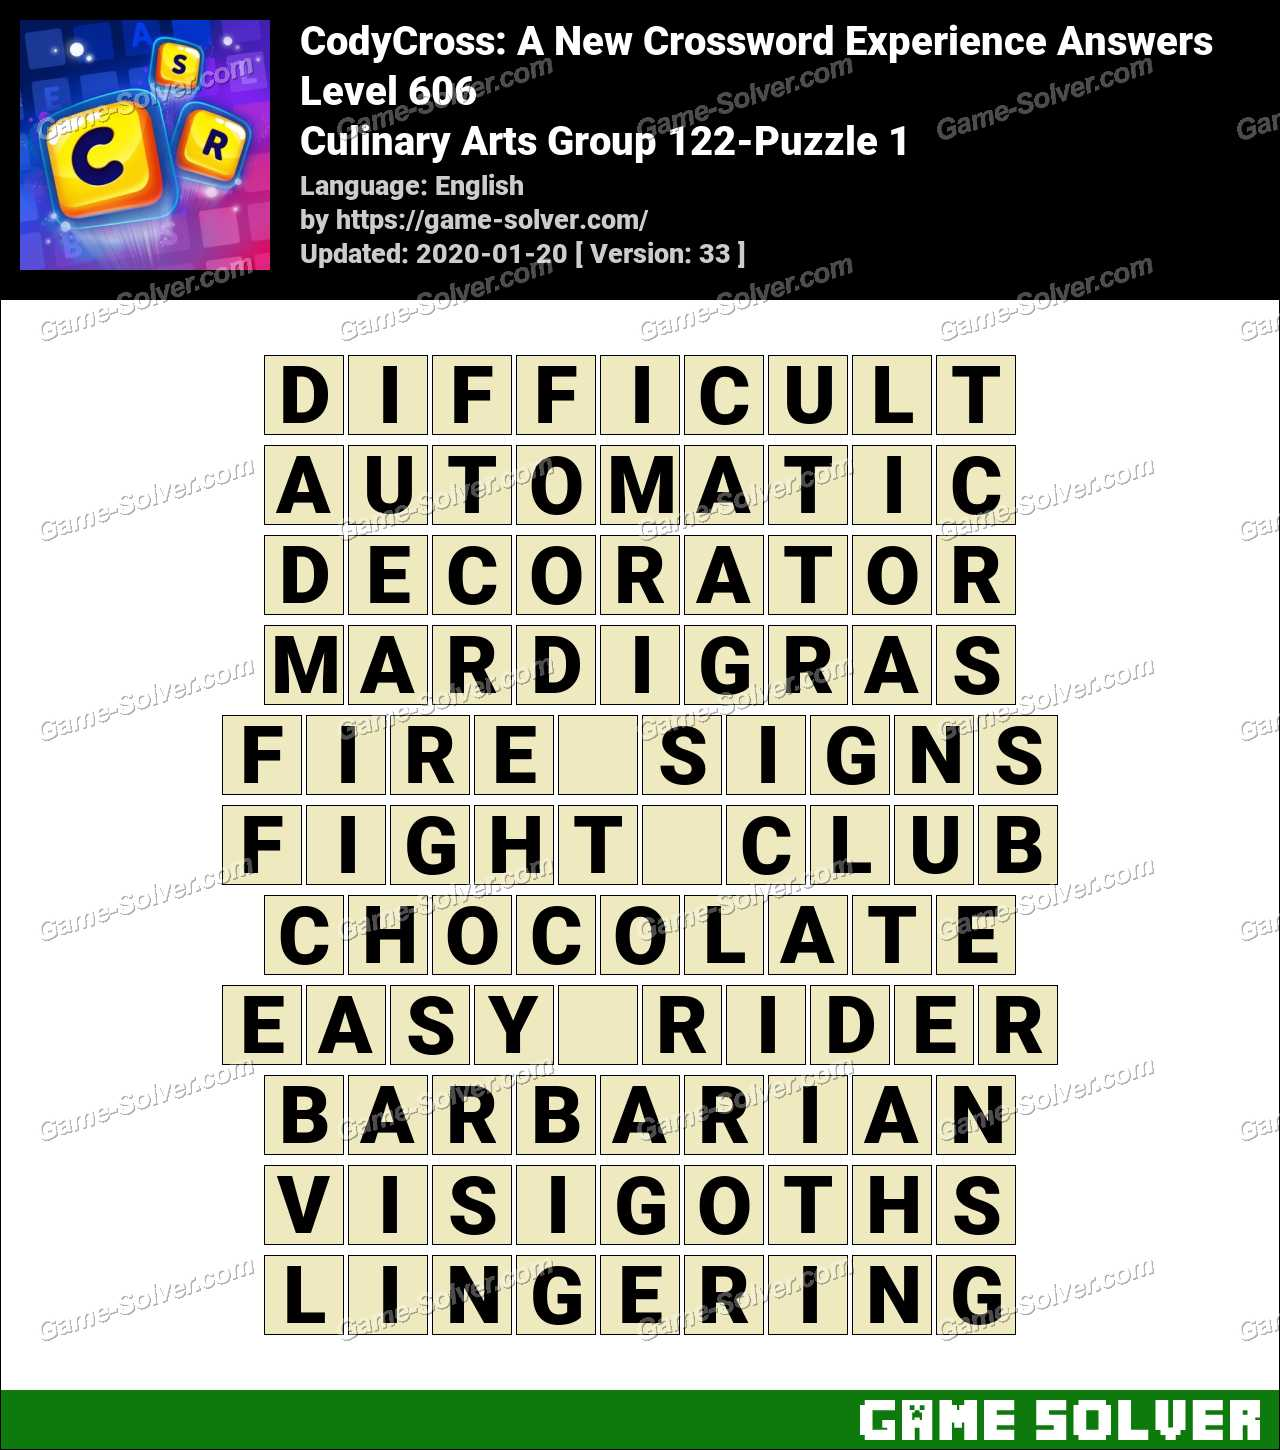 CodyCross Culinary Arts Group 122-Puzzle 1 Answers